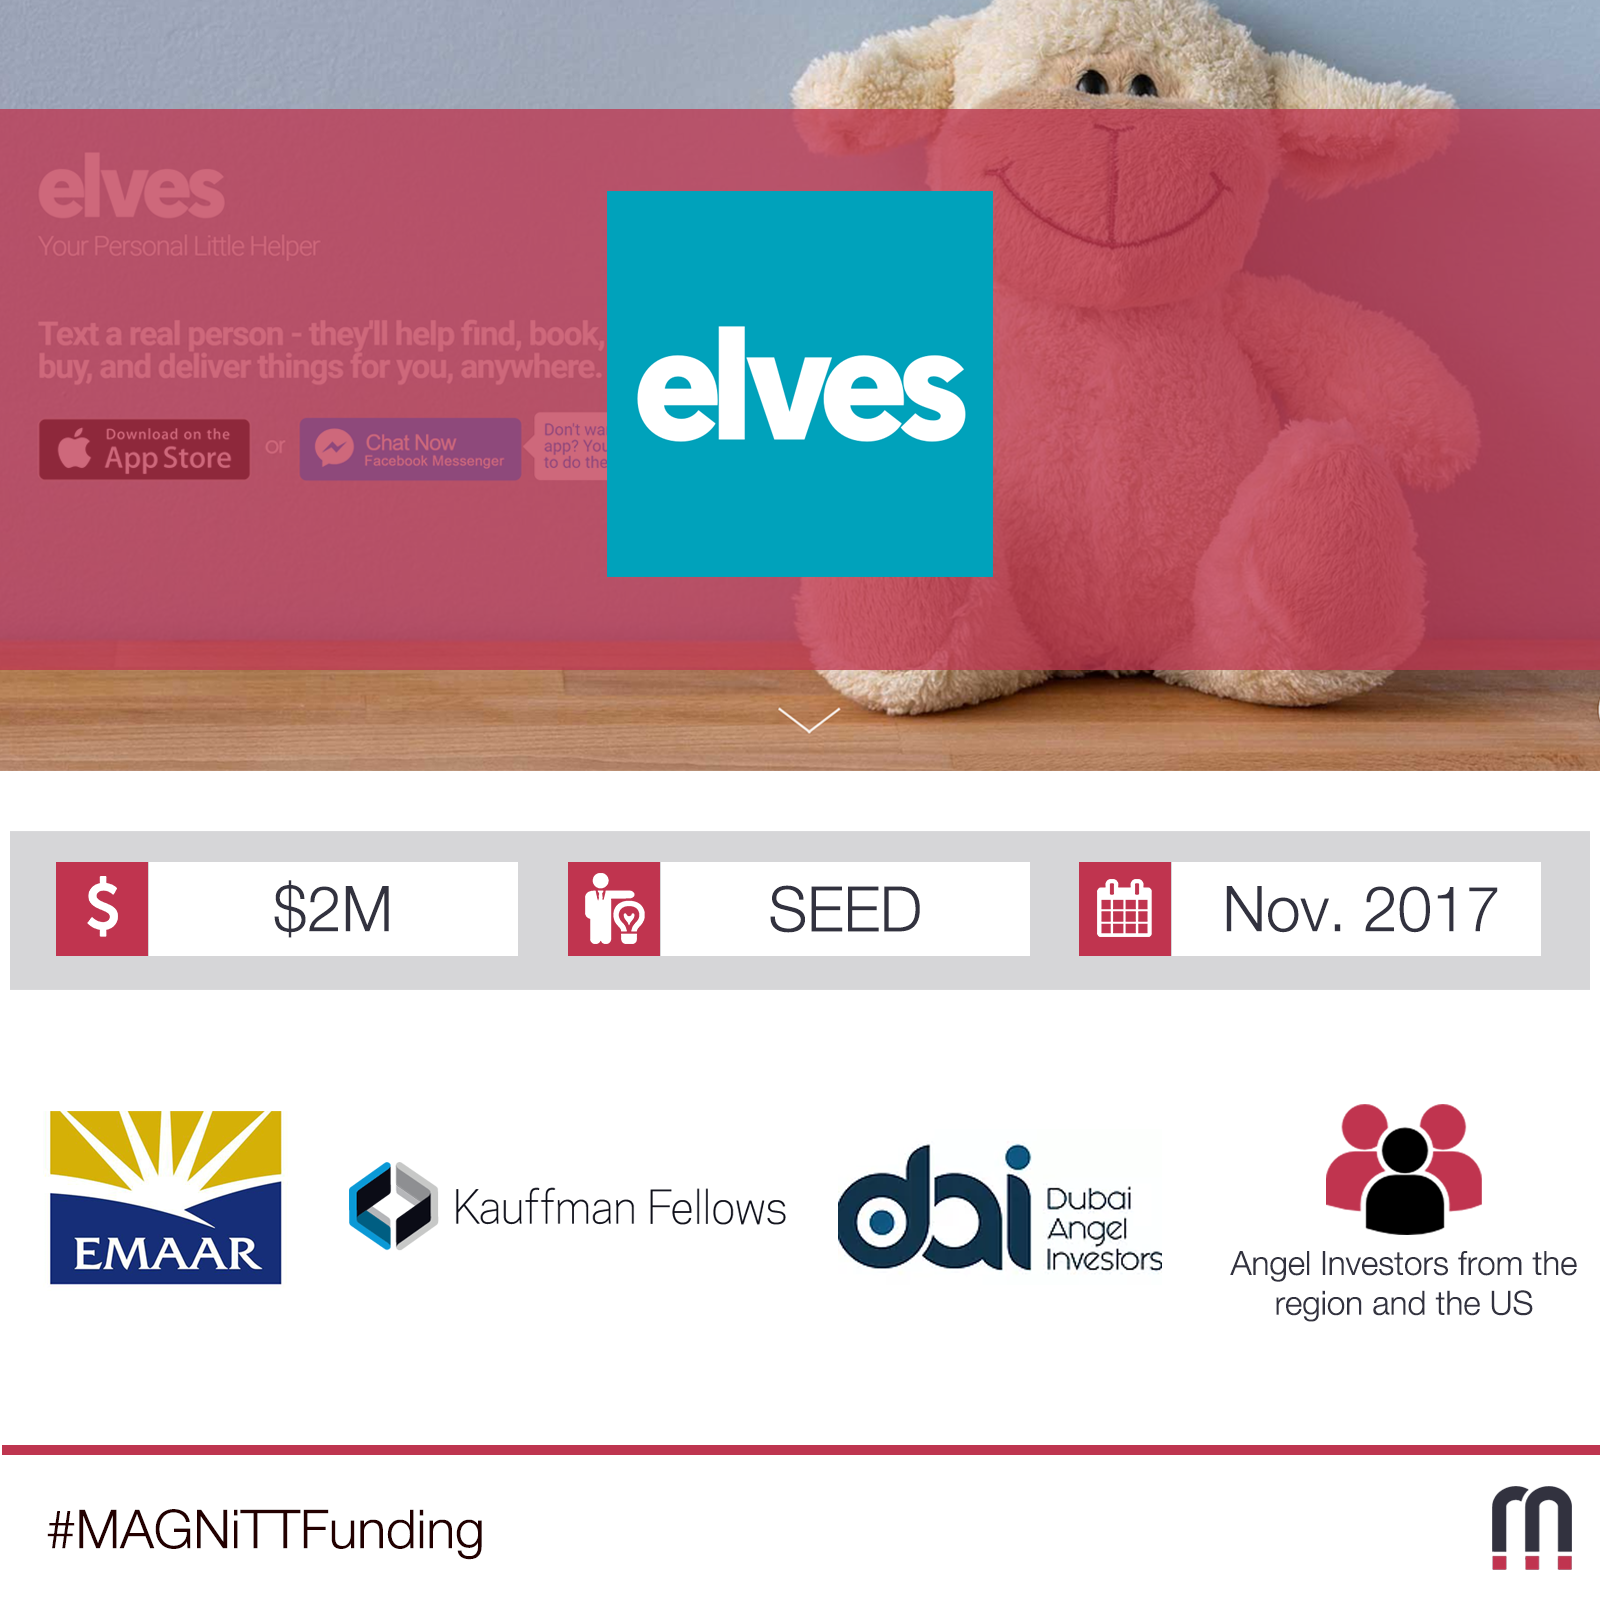 Egypt-based Elves, A Human Assisted AI Digital Assistant App, Raises Largest Seed Round in MENA History From A Slew of Top Investors